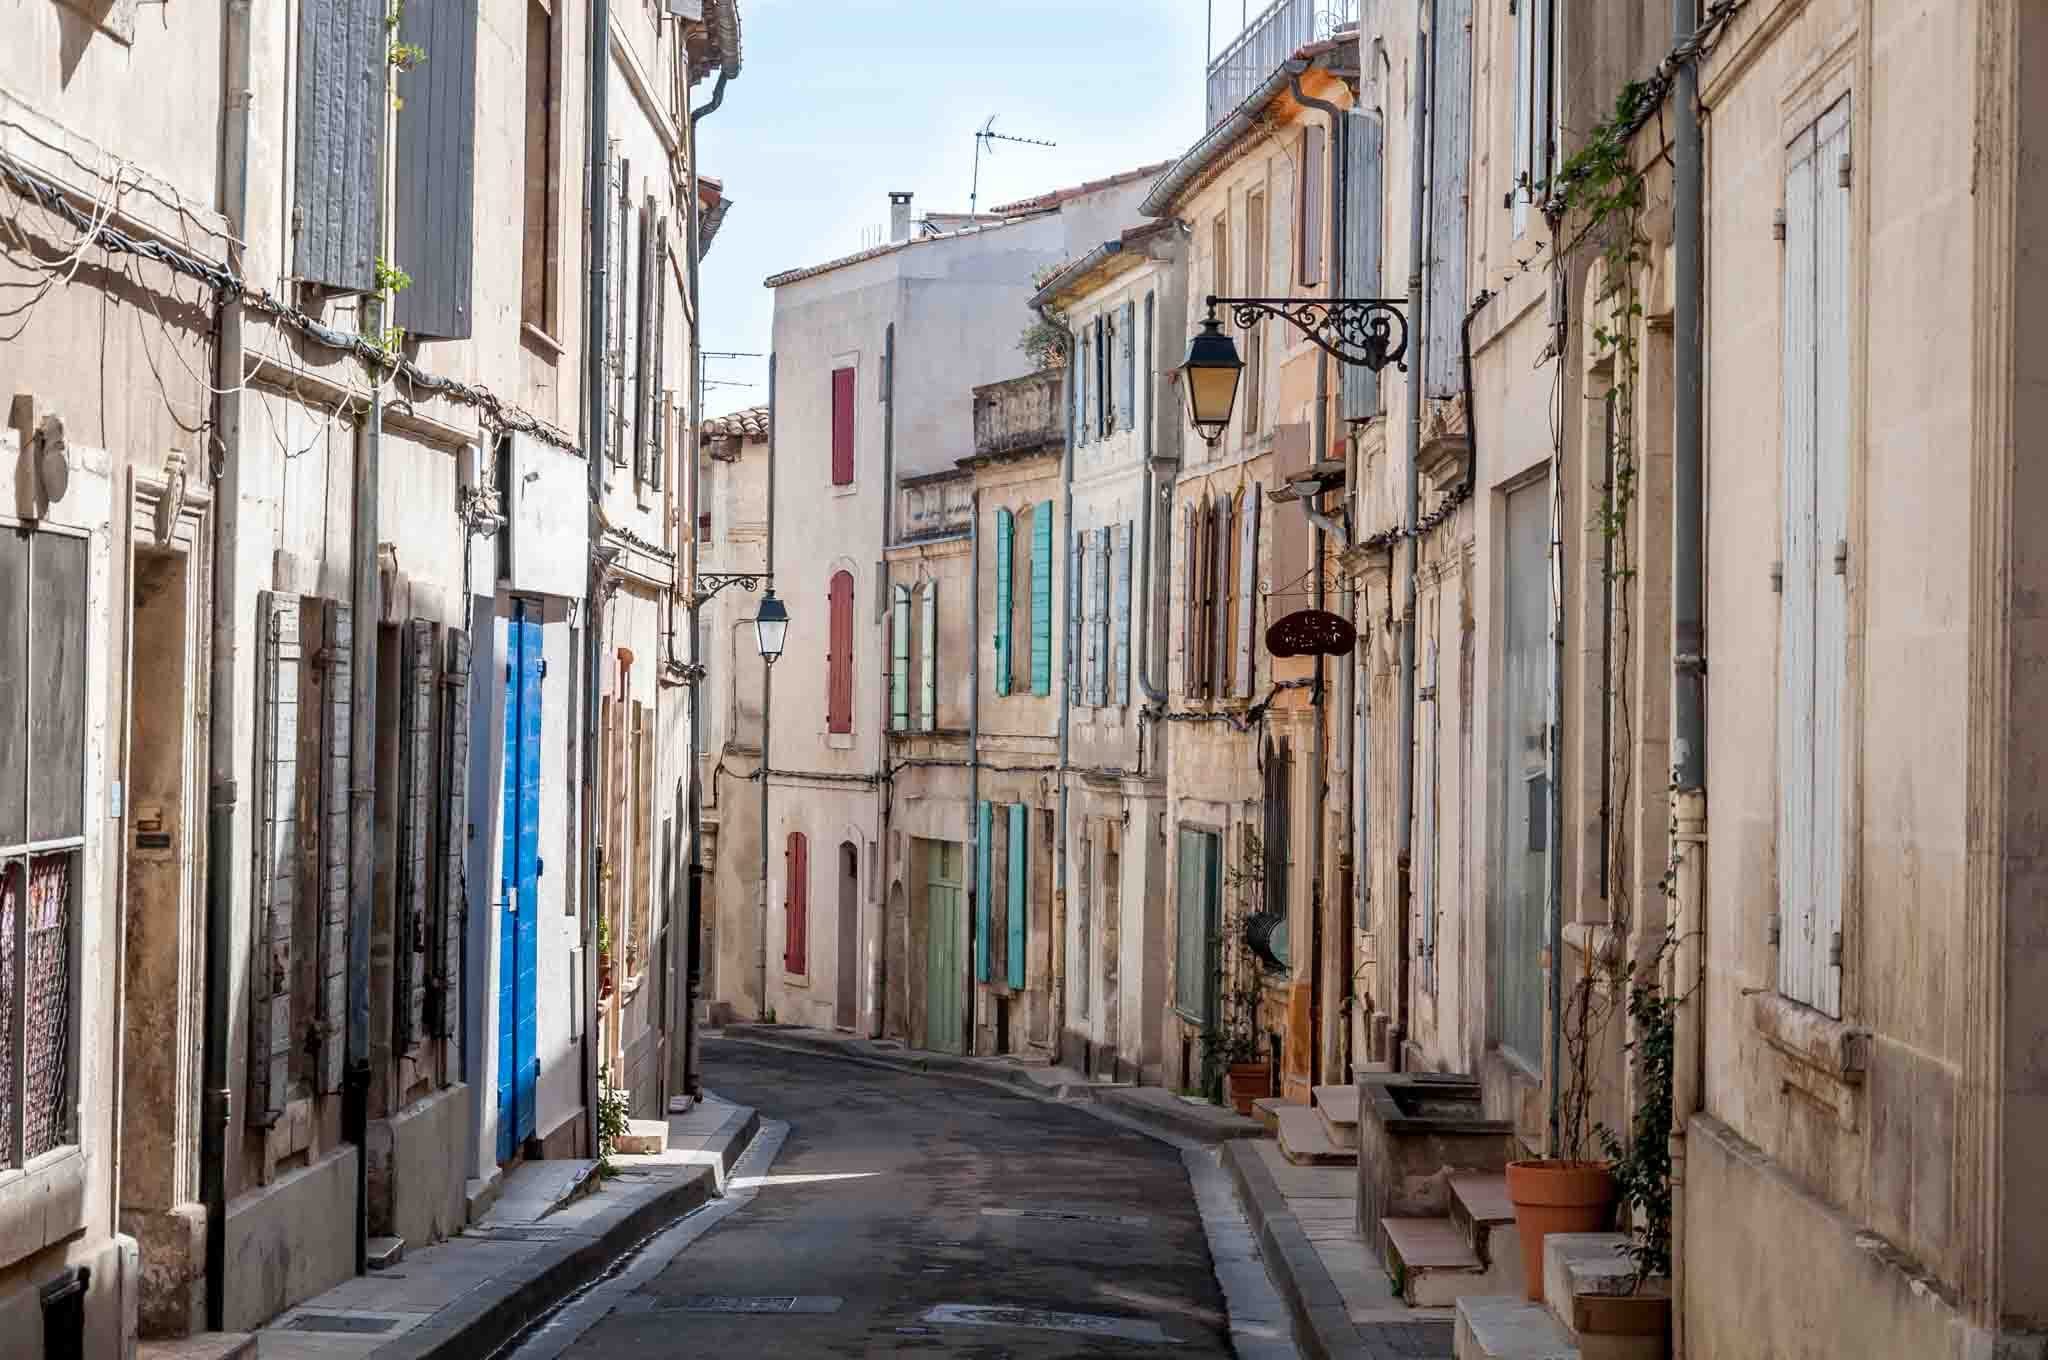 Homes with colorful shutters on a street in Arles, France